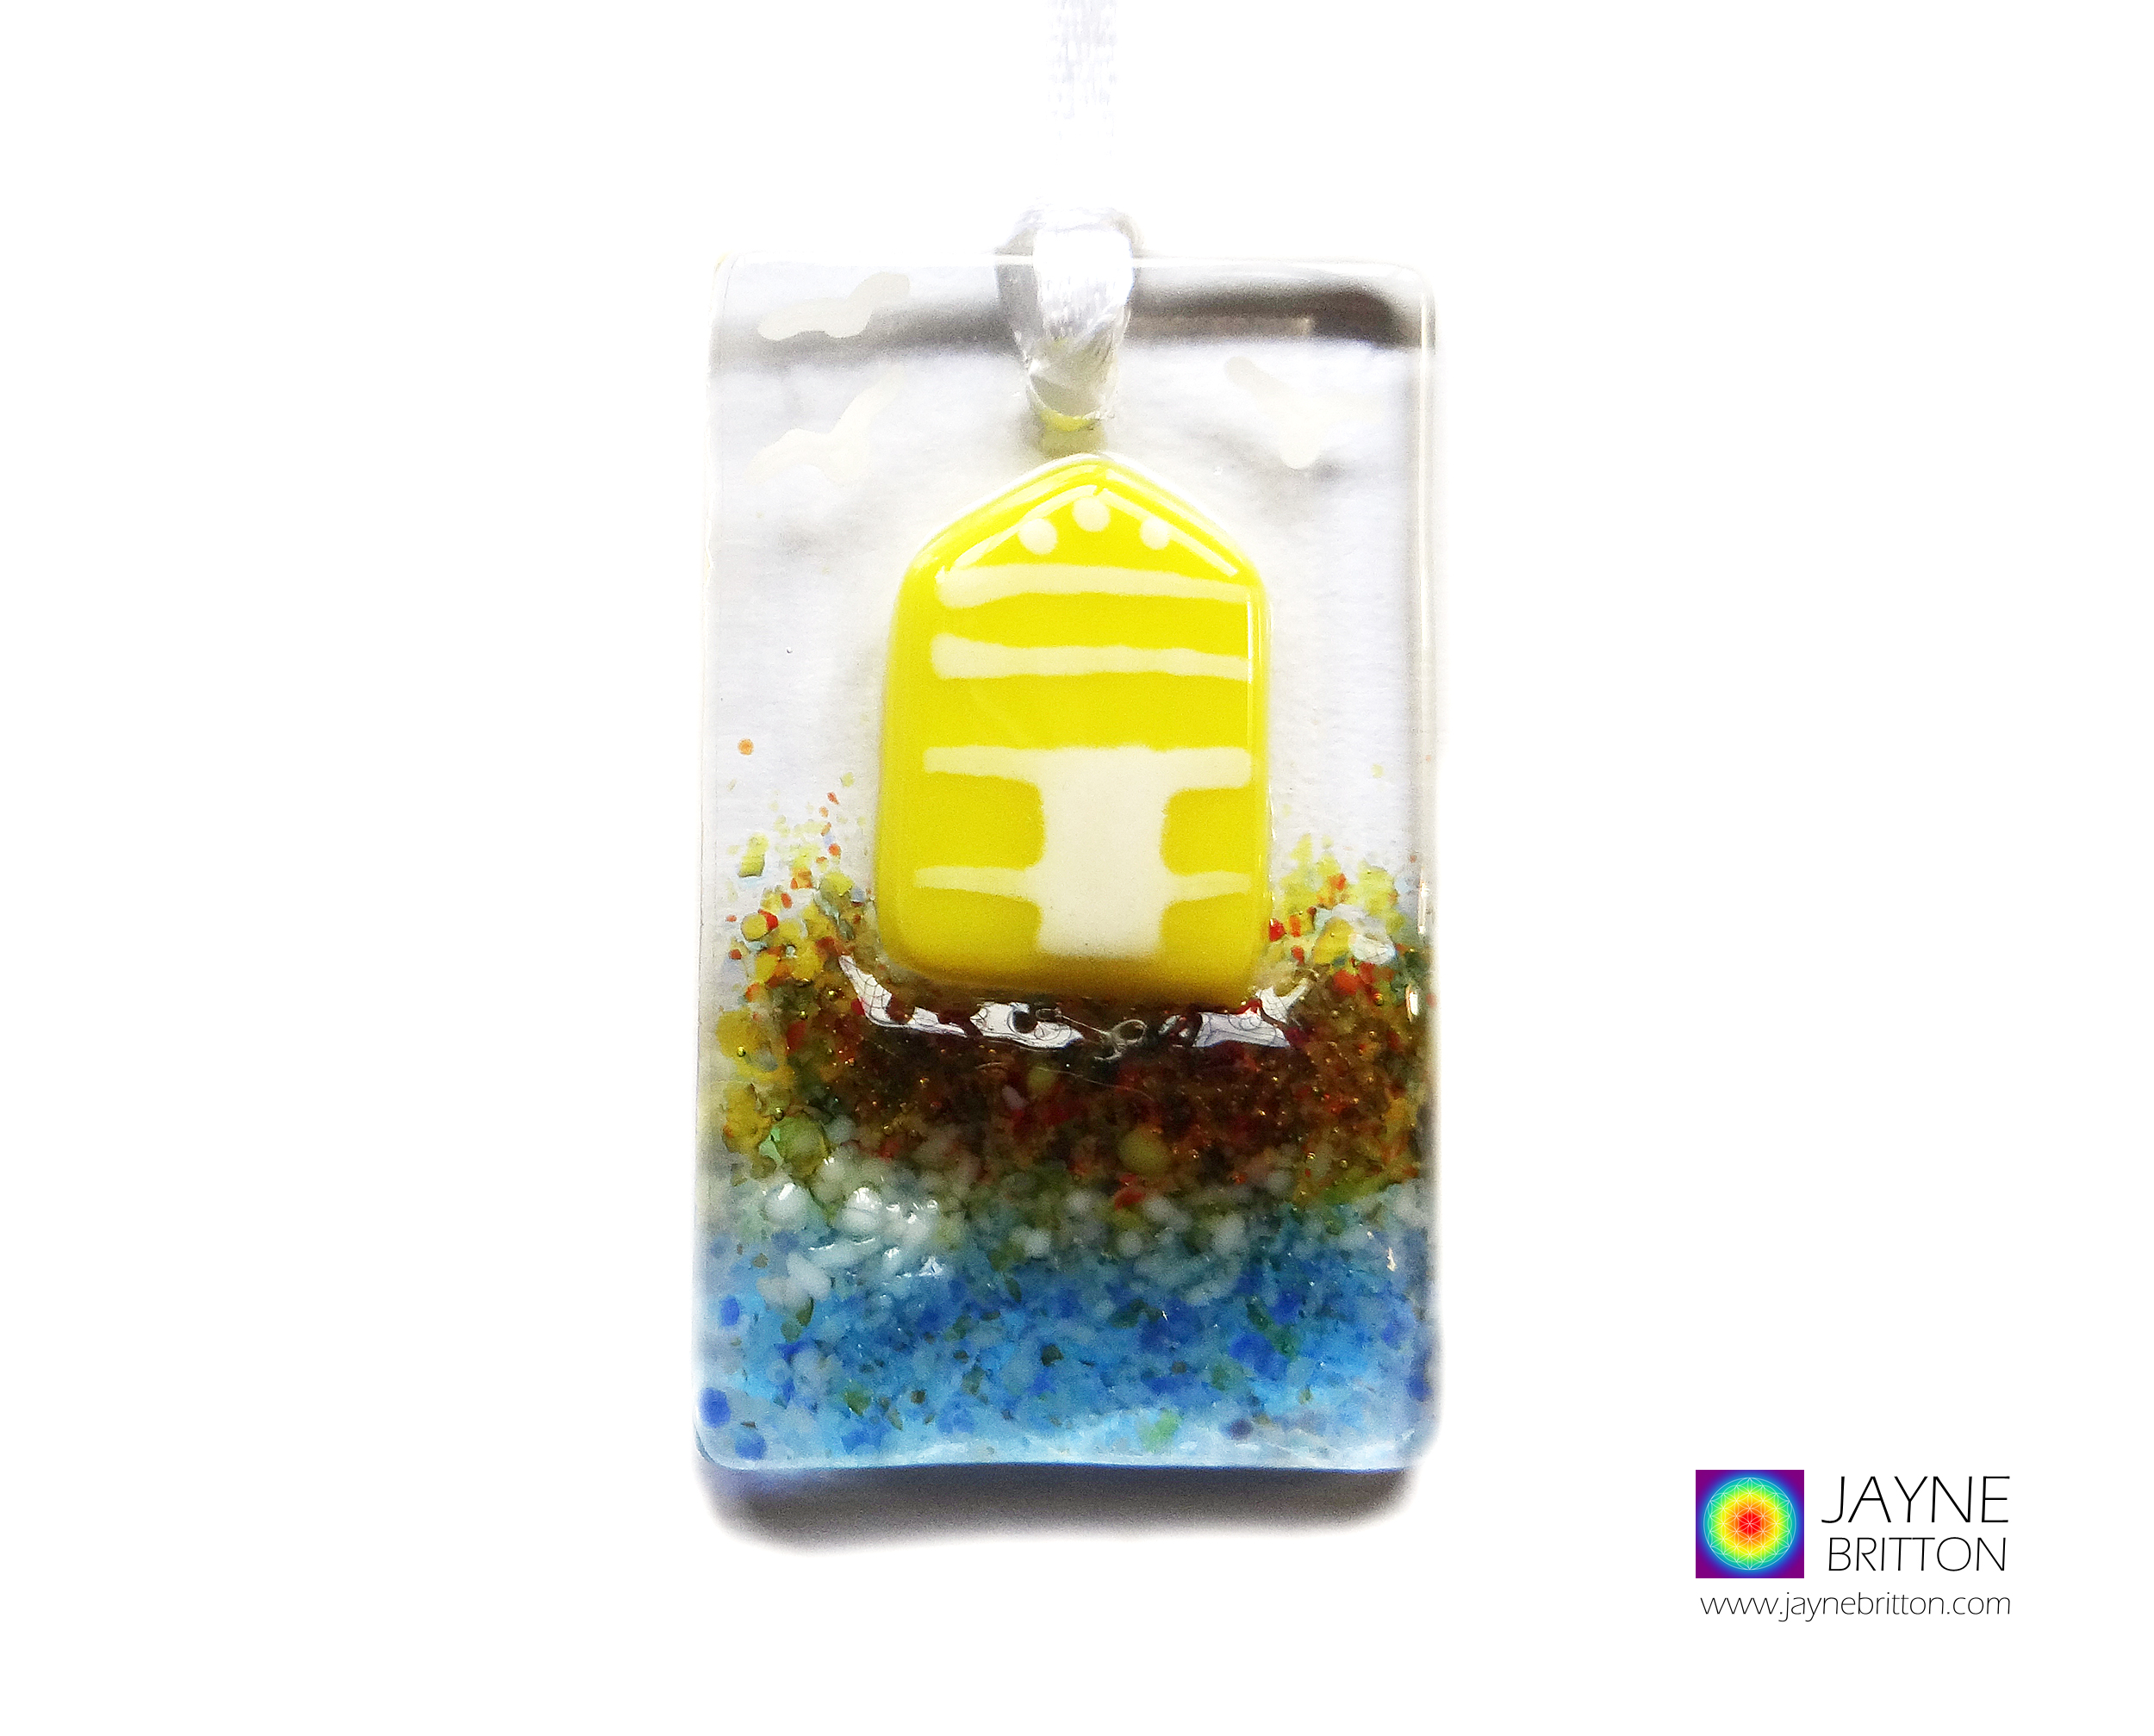 Greeting card with gift, yellow beach hut, handmade fused glass light catcher